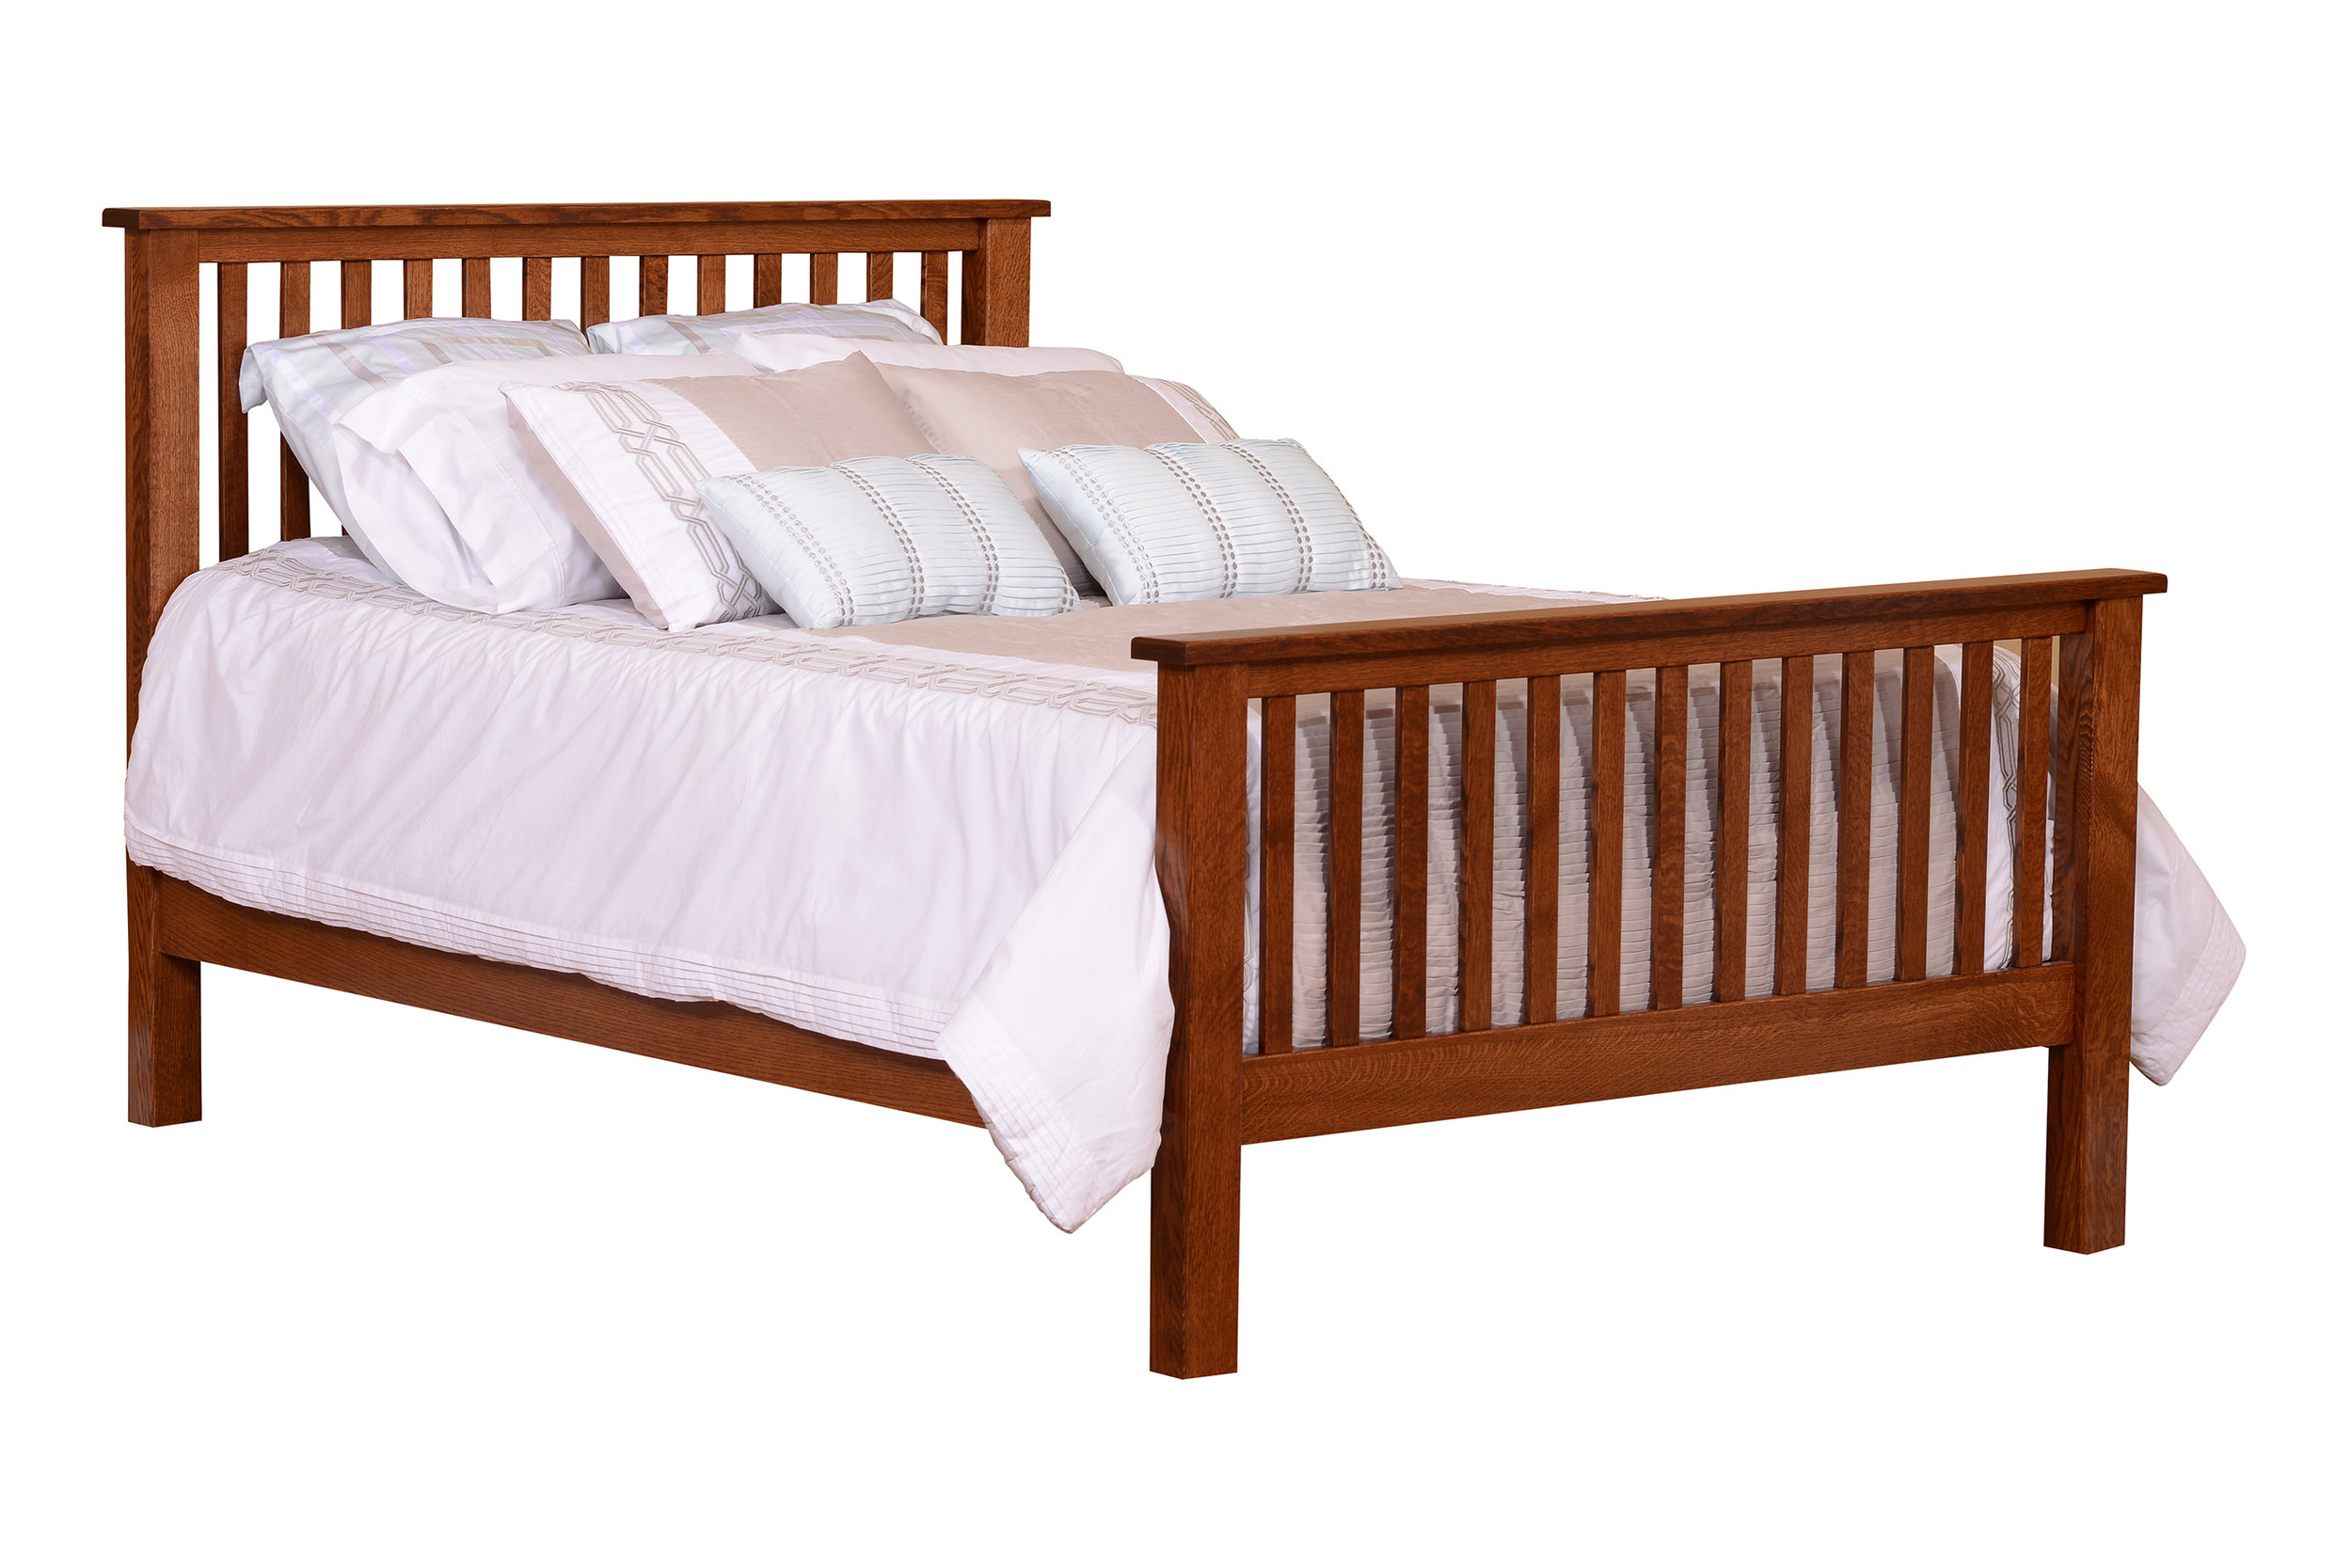 Classic Mission Bed